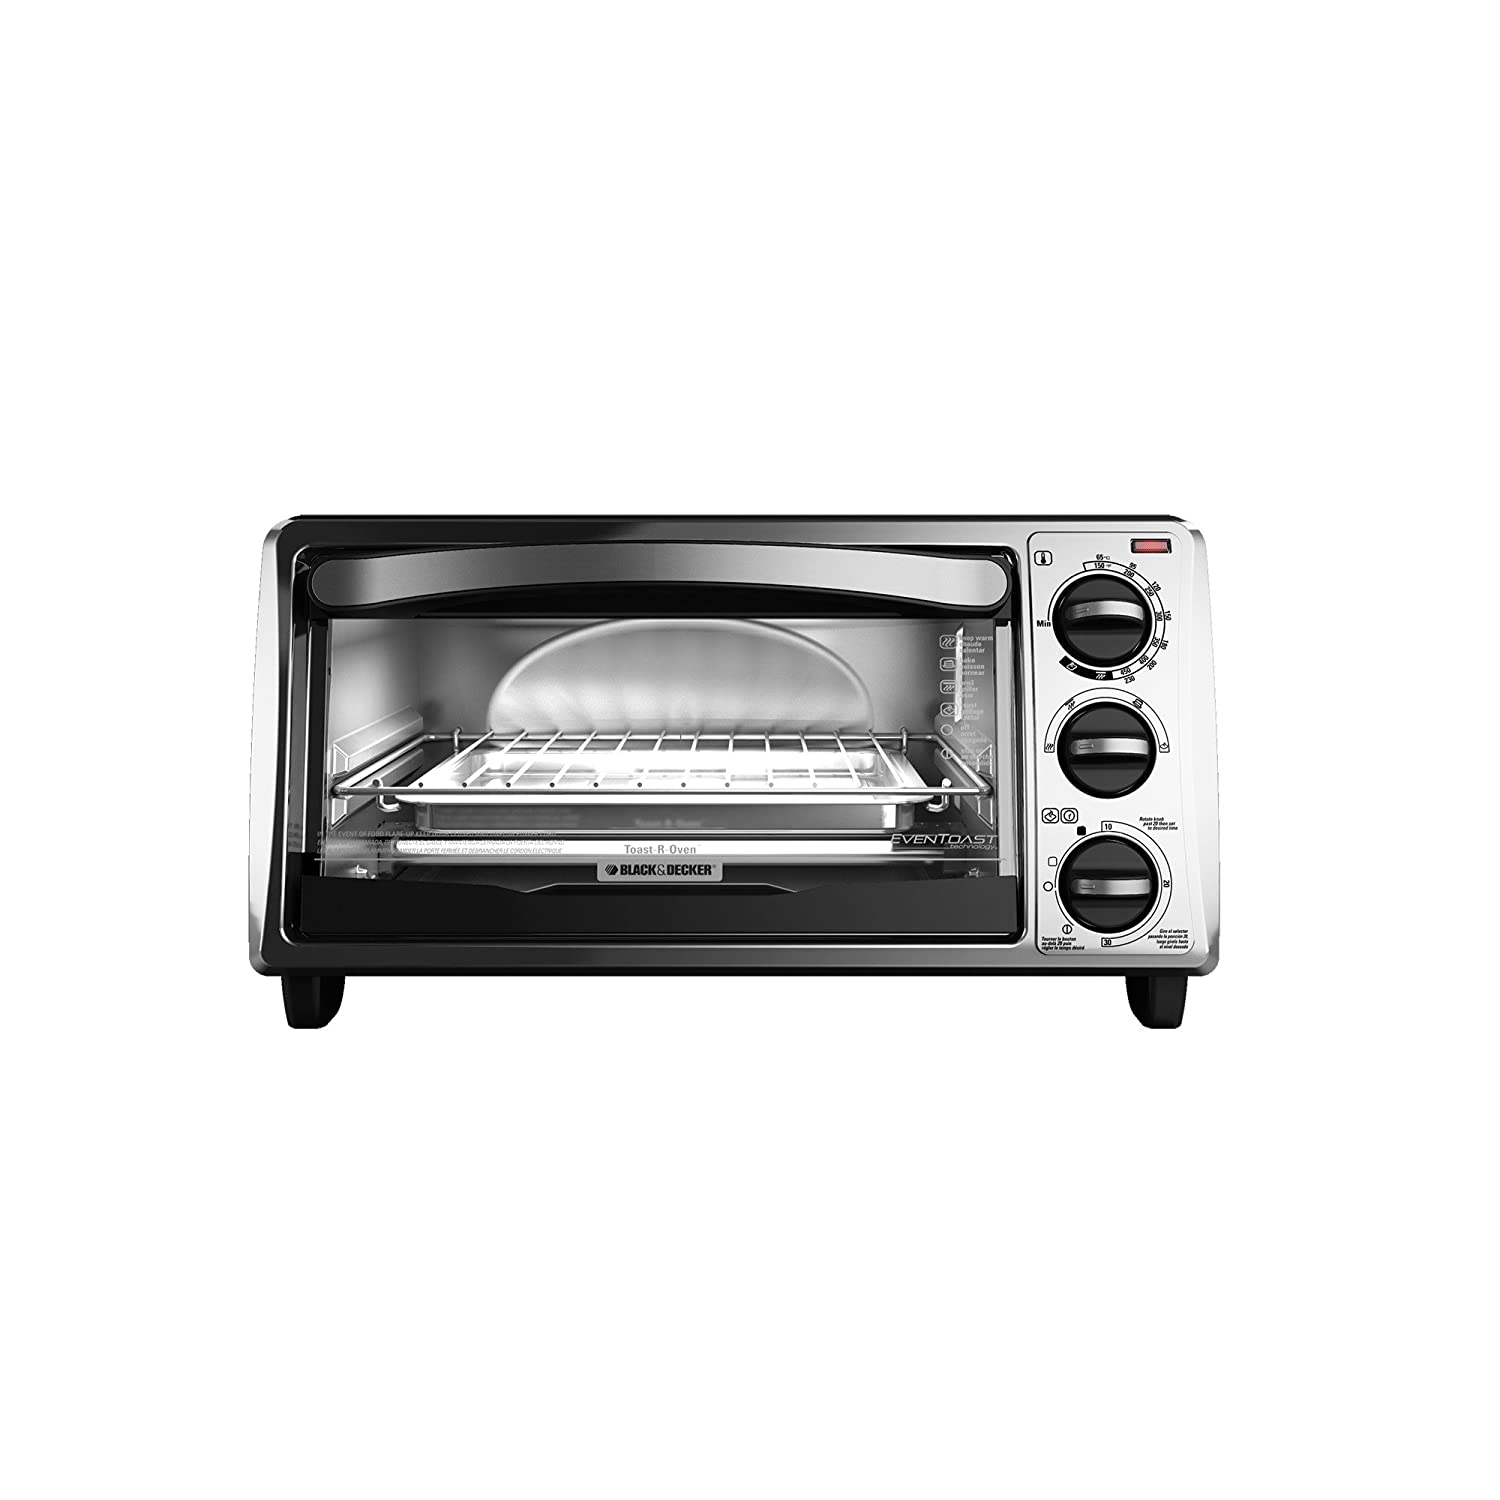 Small Ovens For Apartments images